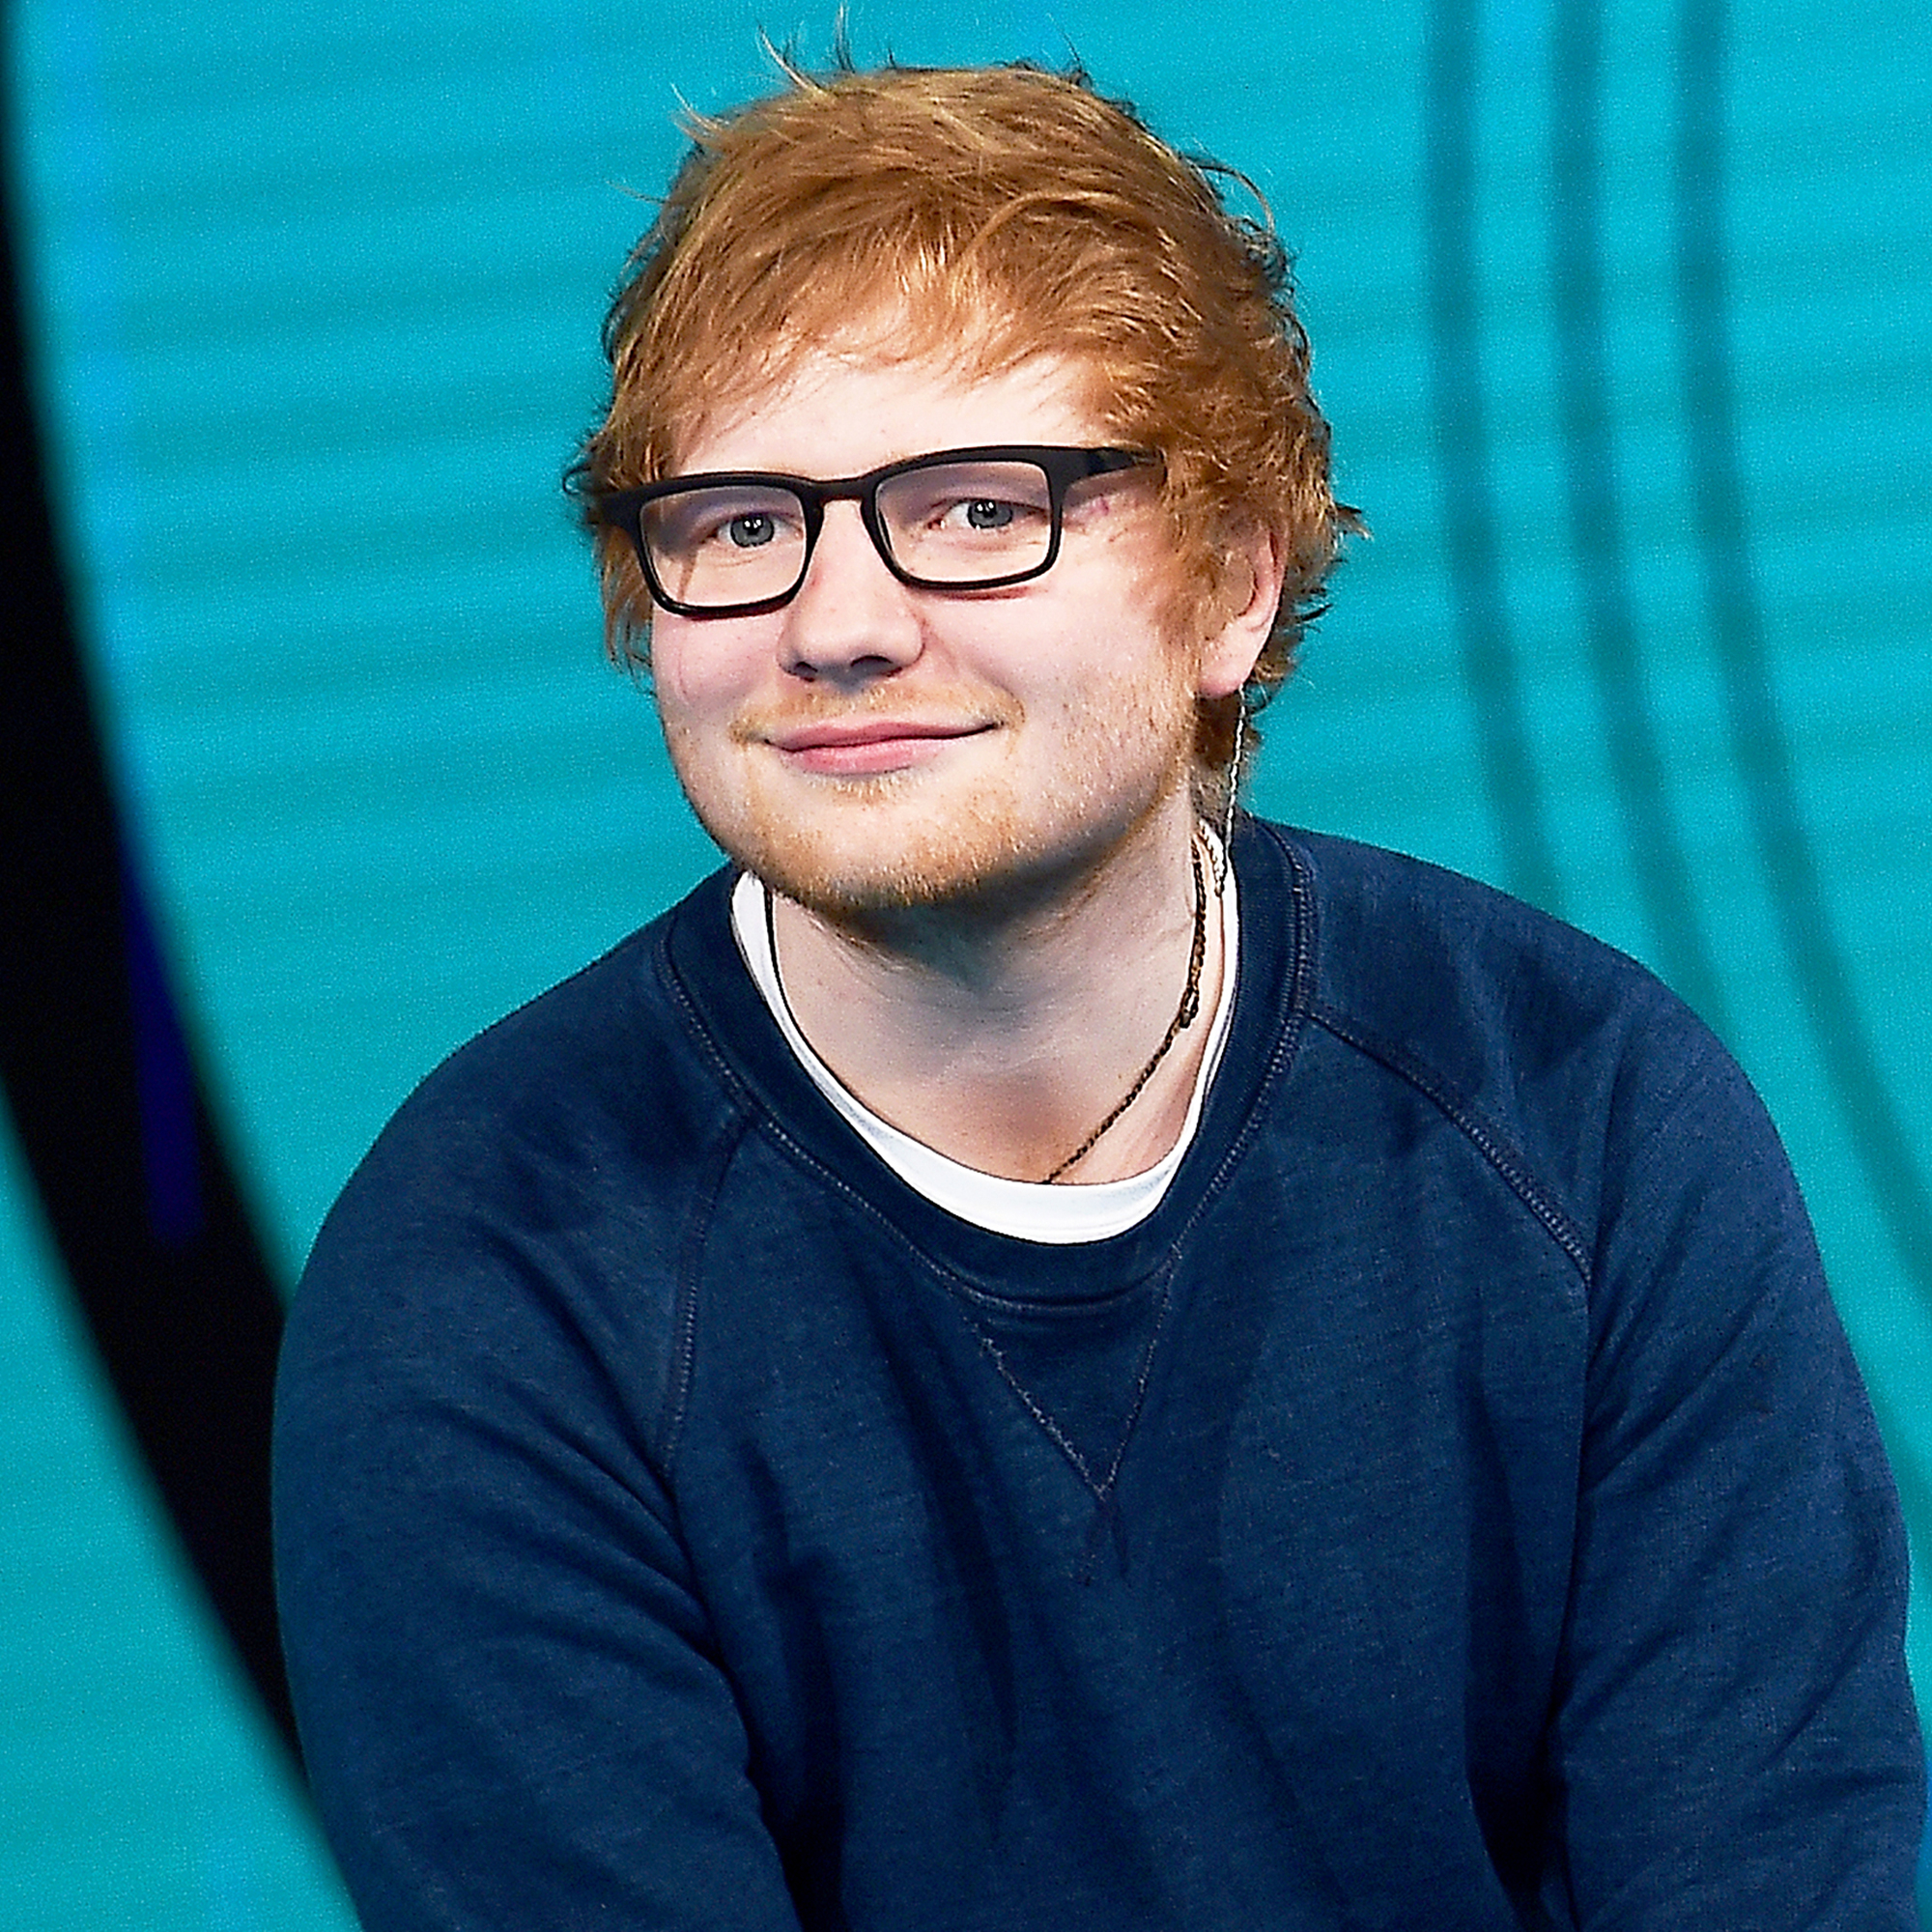 Ed Sheeran CANCELS tour dates after being involved in serious crash